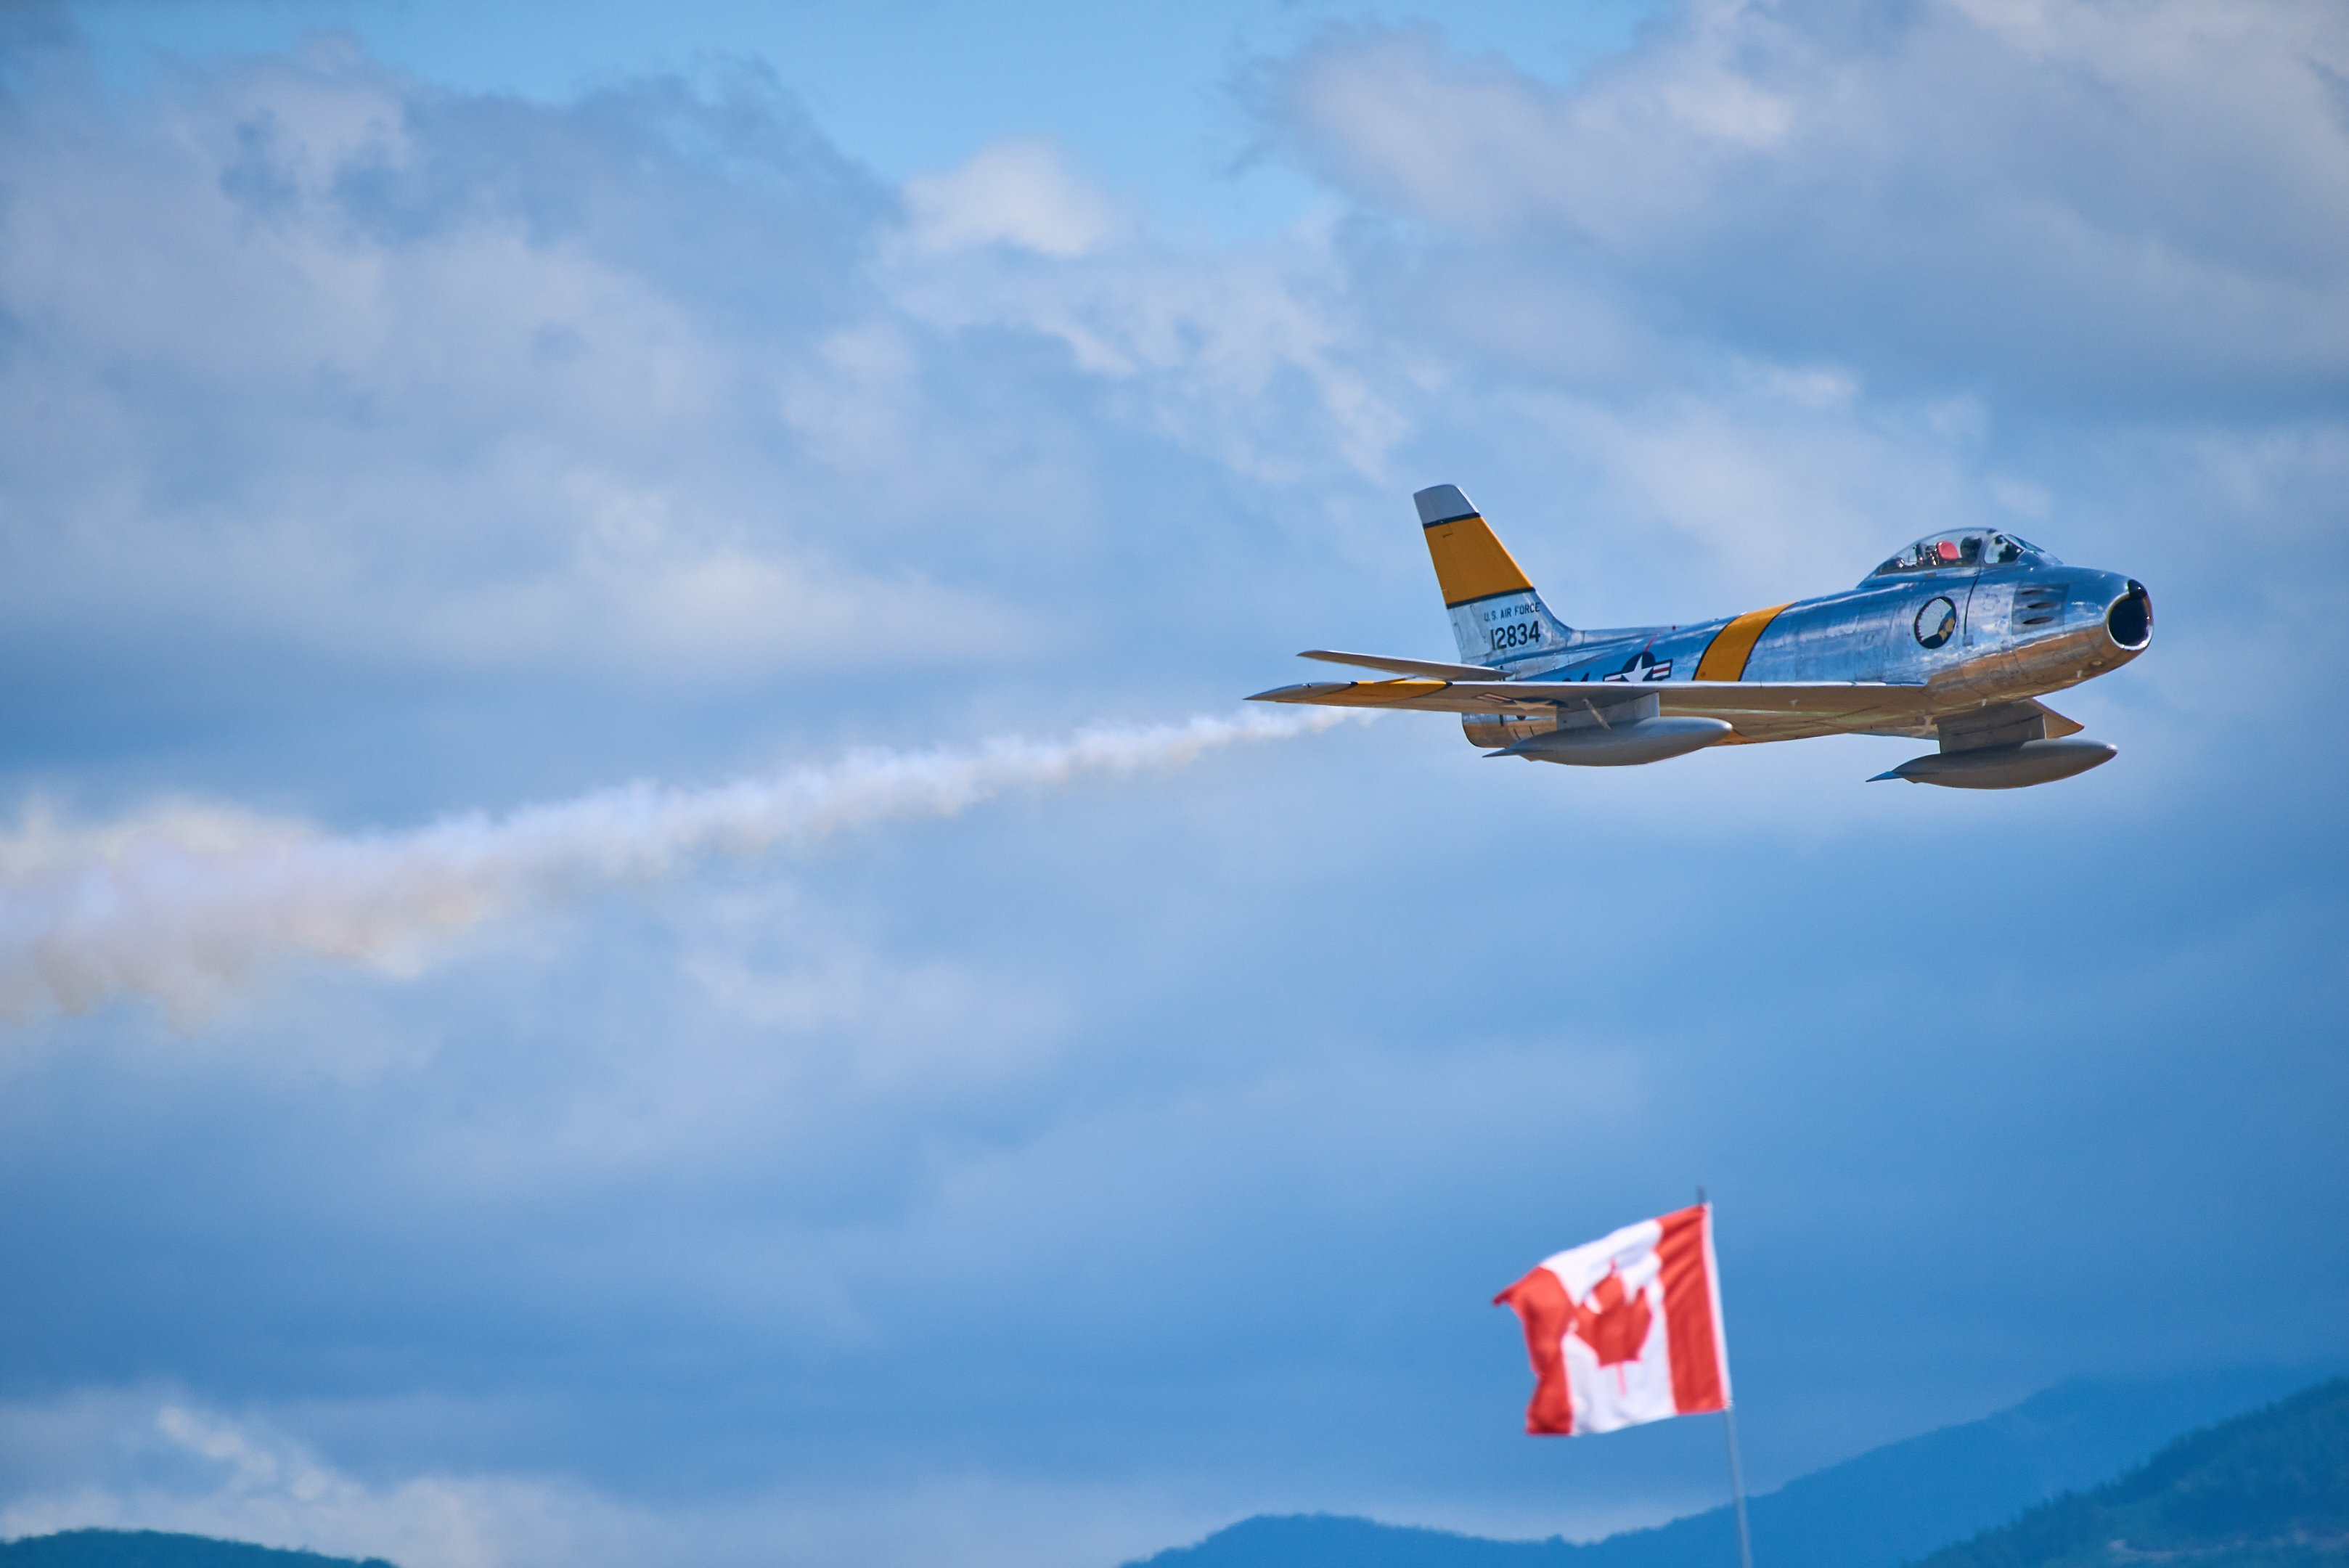 Abbotsford Airshow : 2017-08-13 : Jet Demo with flag